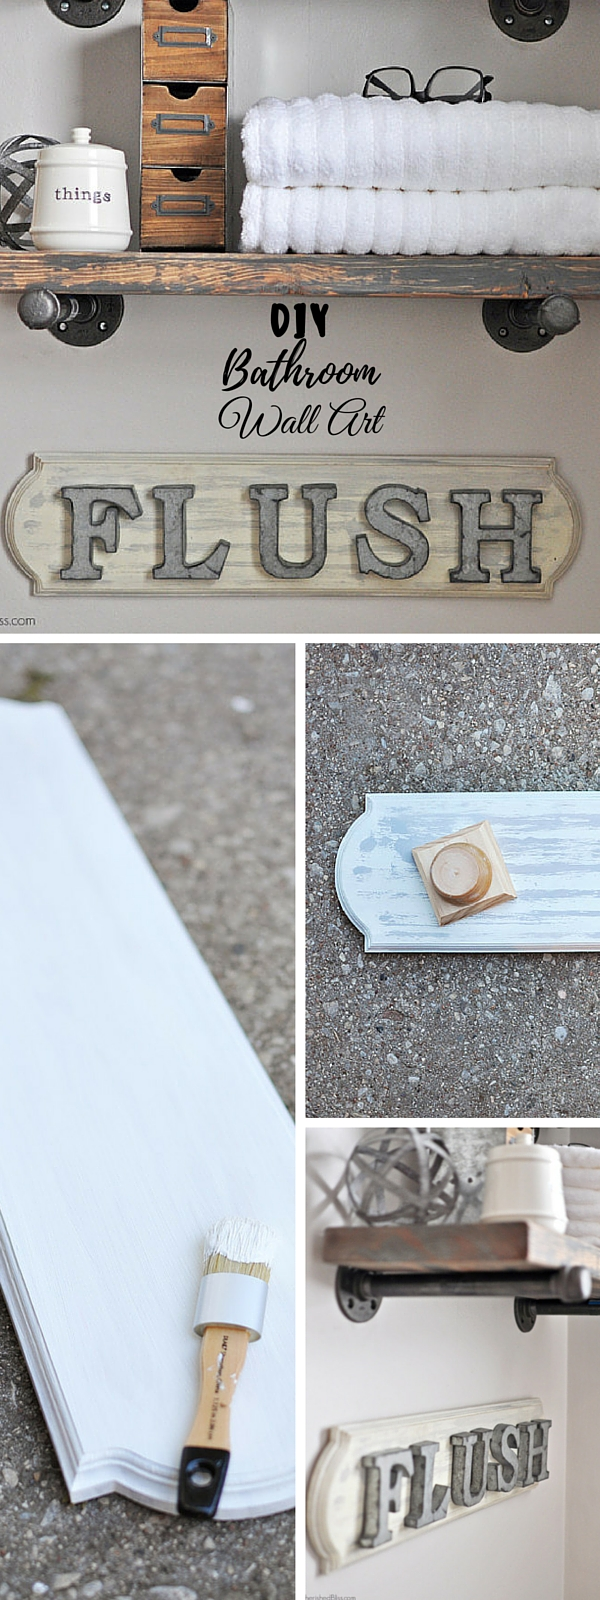 #DIY Bathroom Wall Art #bathroomdecor